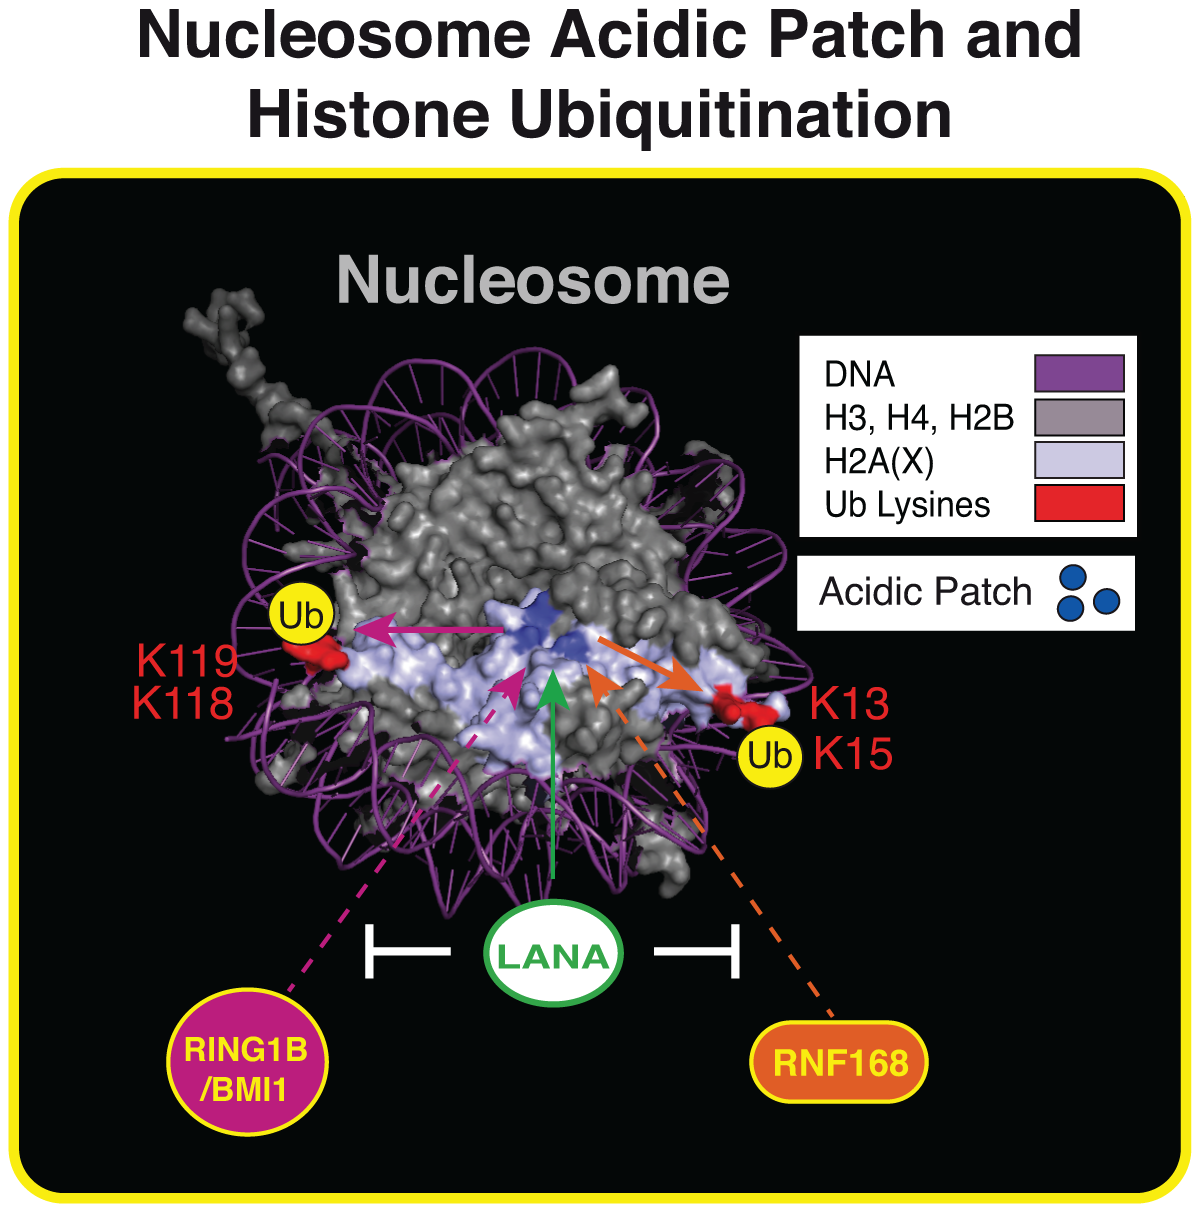 The nucleosome acidic patch and histone ubiquitination.